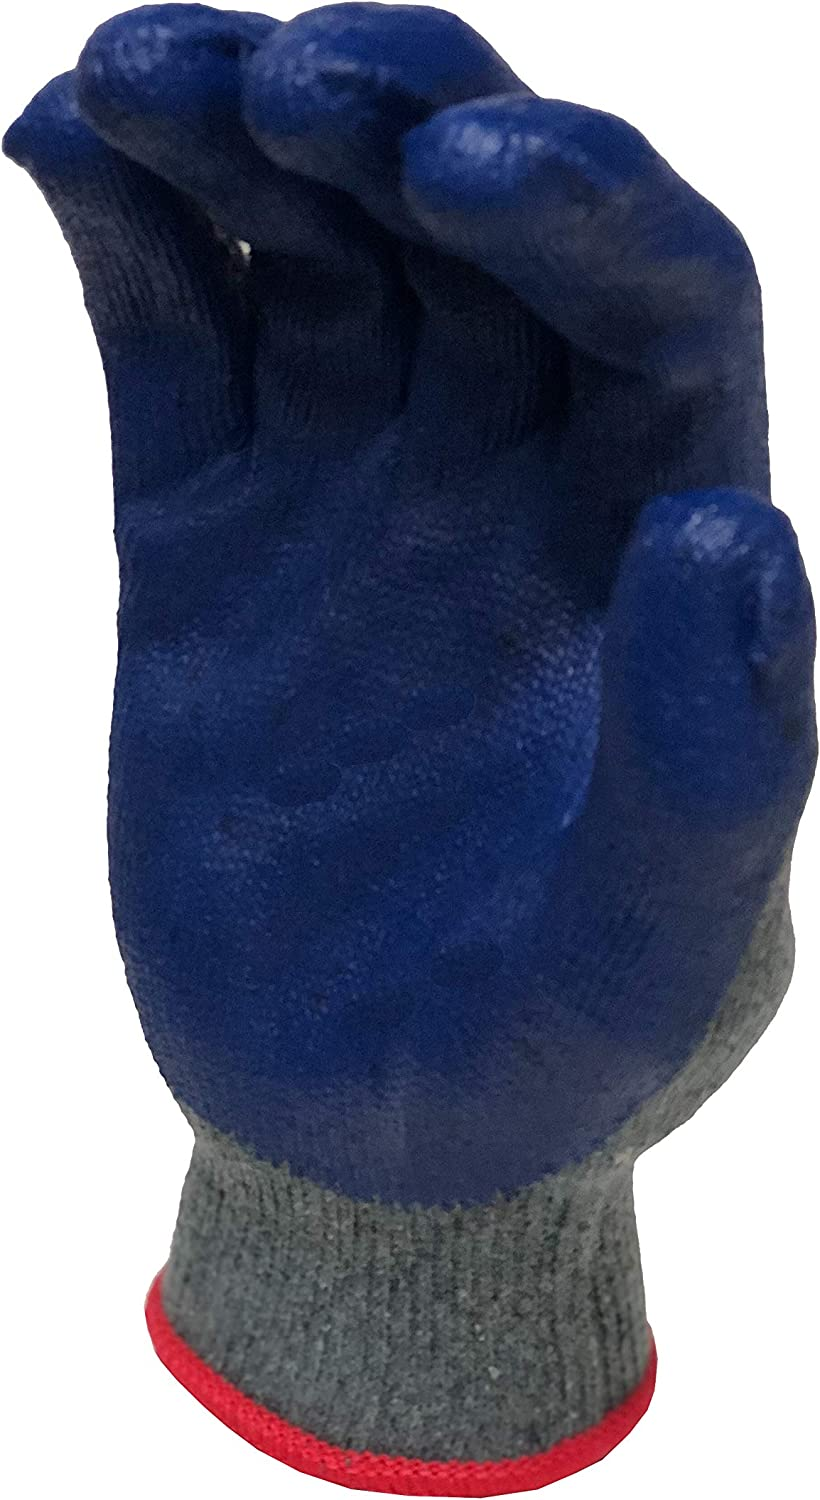 G F Products 3108-300 String Knit Palm Cheap SALE Under blast sales Start Dipped Latex Gloves in